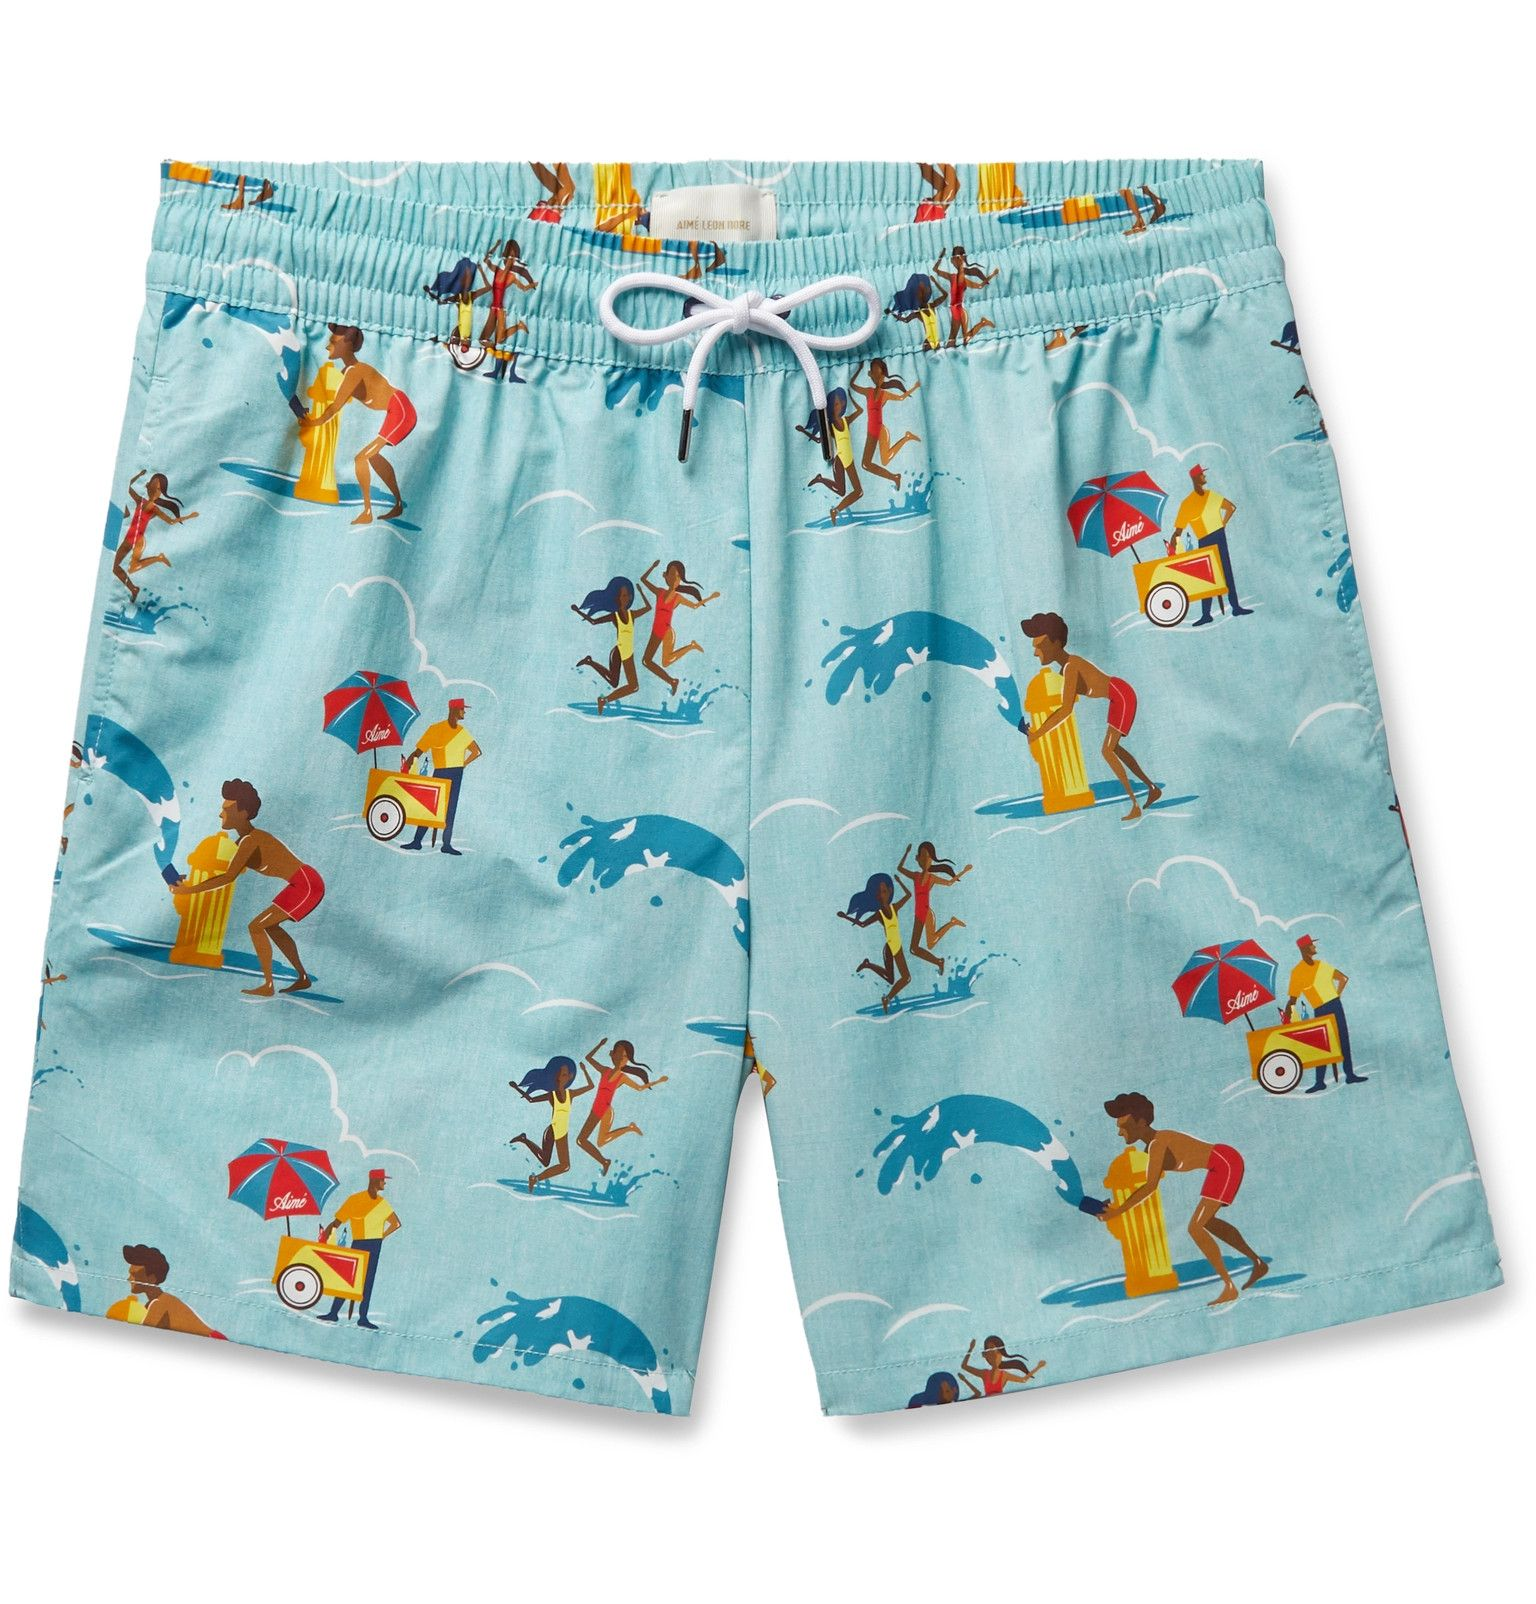 Starfish Teal Mens Beach Shorts Casual Surfing Trunks with 3 Pockets